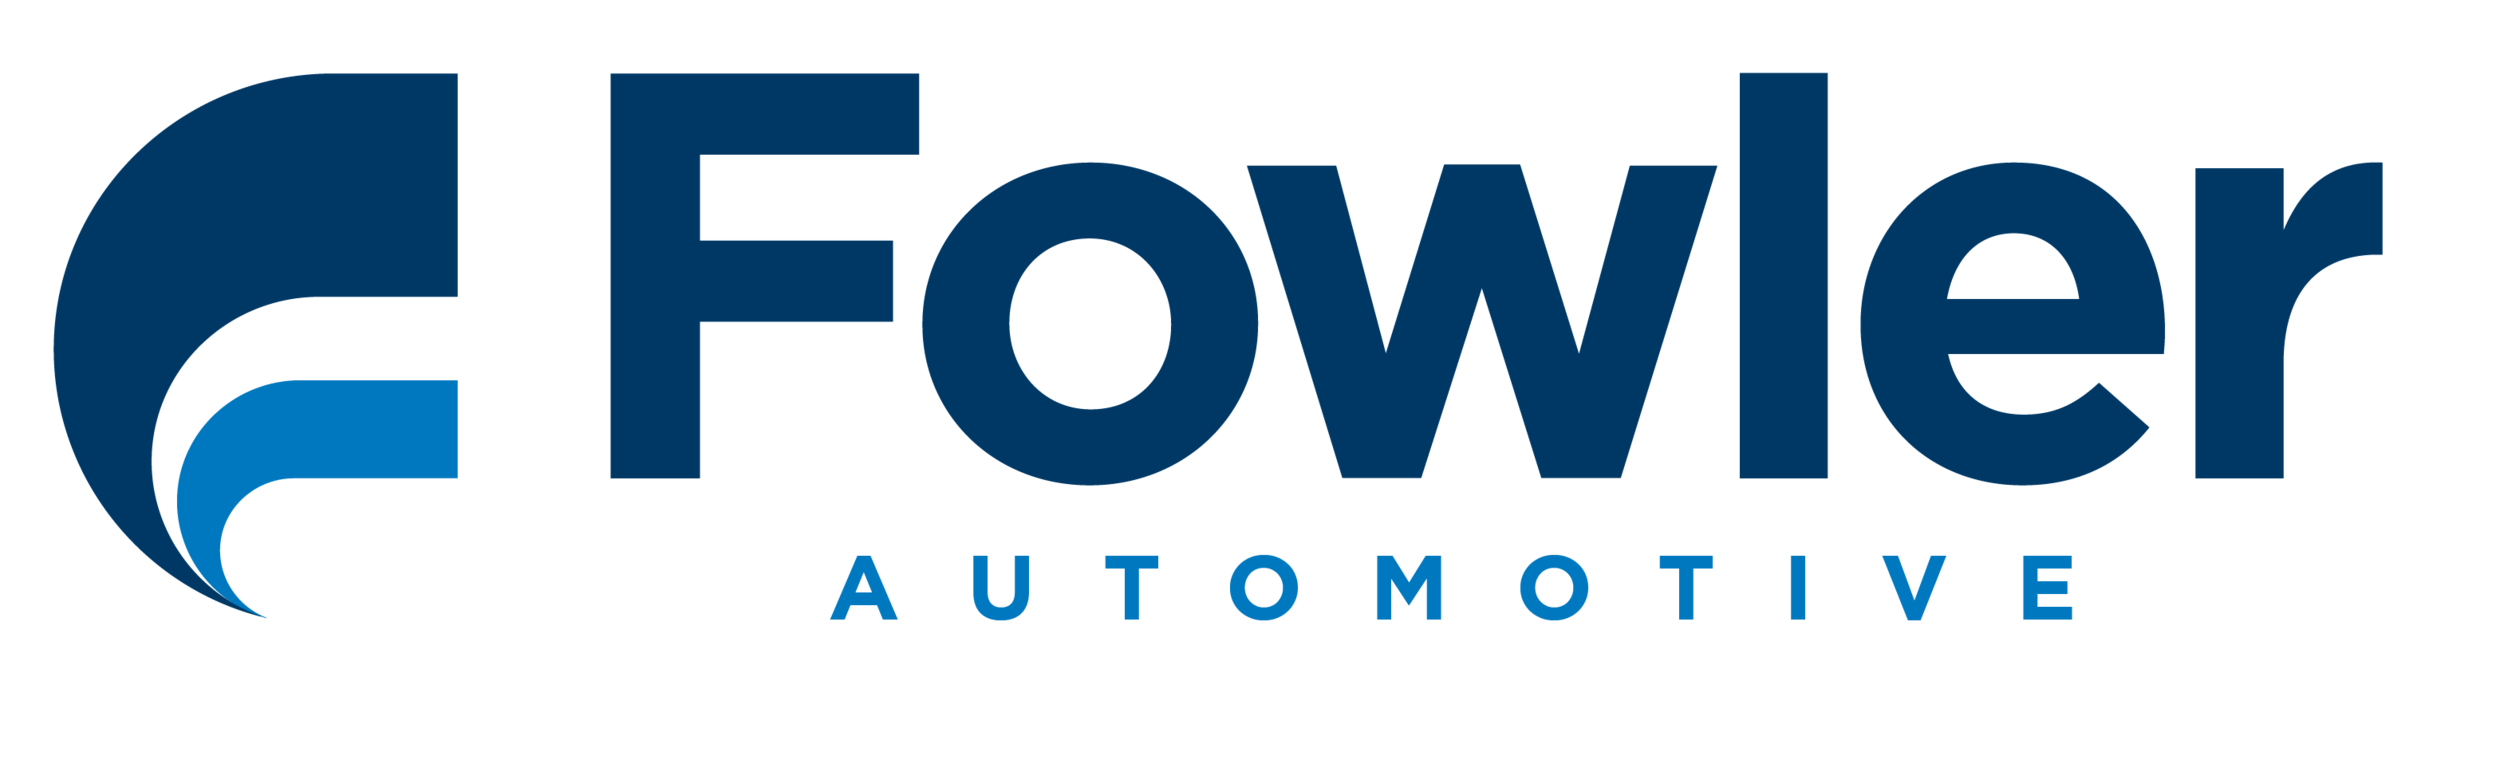 Fowler_Logo cropped.png